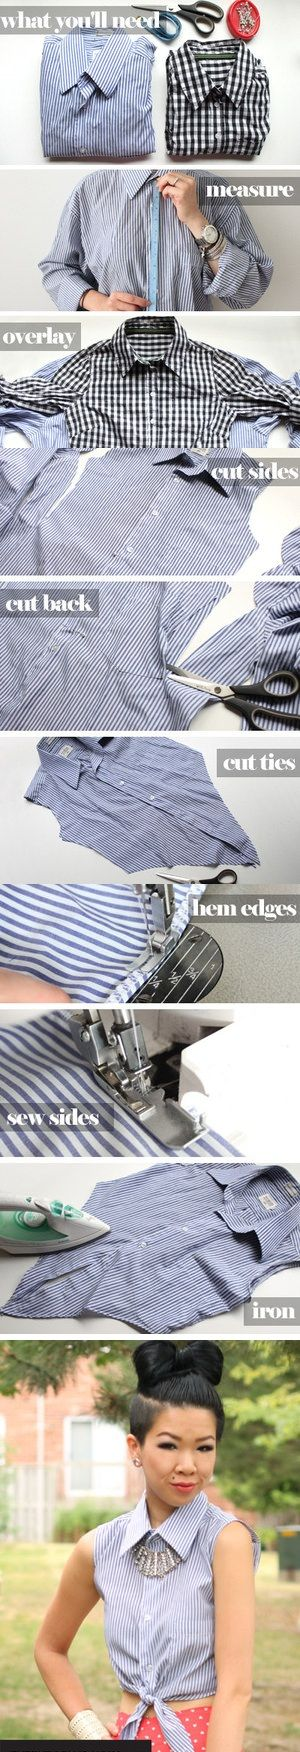 DIY Cropped Tie Top http://www.chictopia.com/photo/show/700353-DIY+Cropped+Tie+Top-sky-blue-cropped-blouse